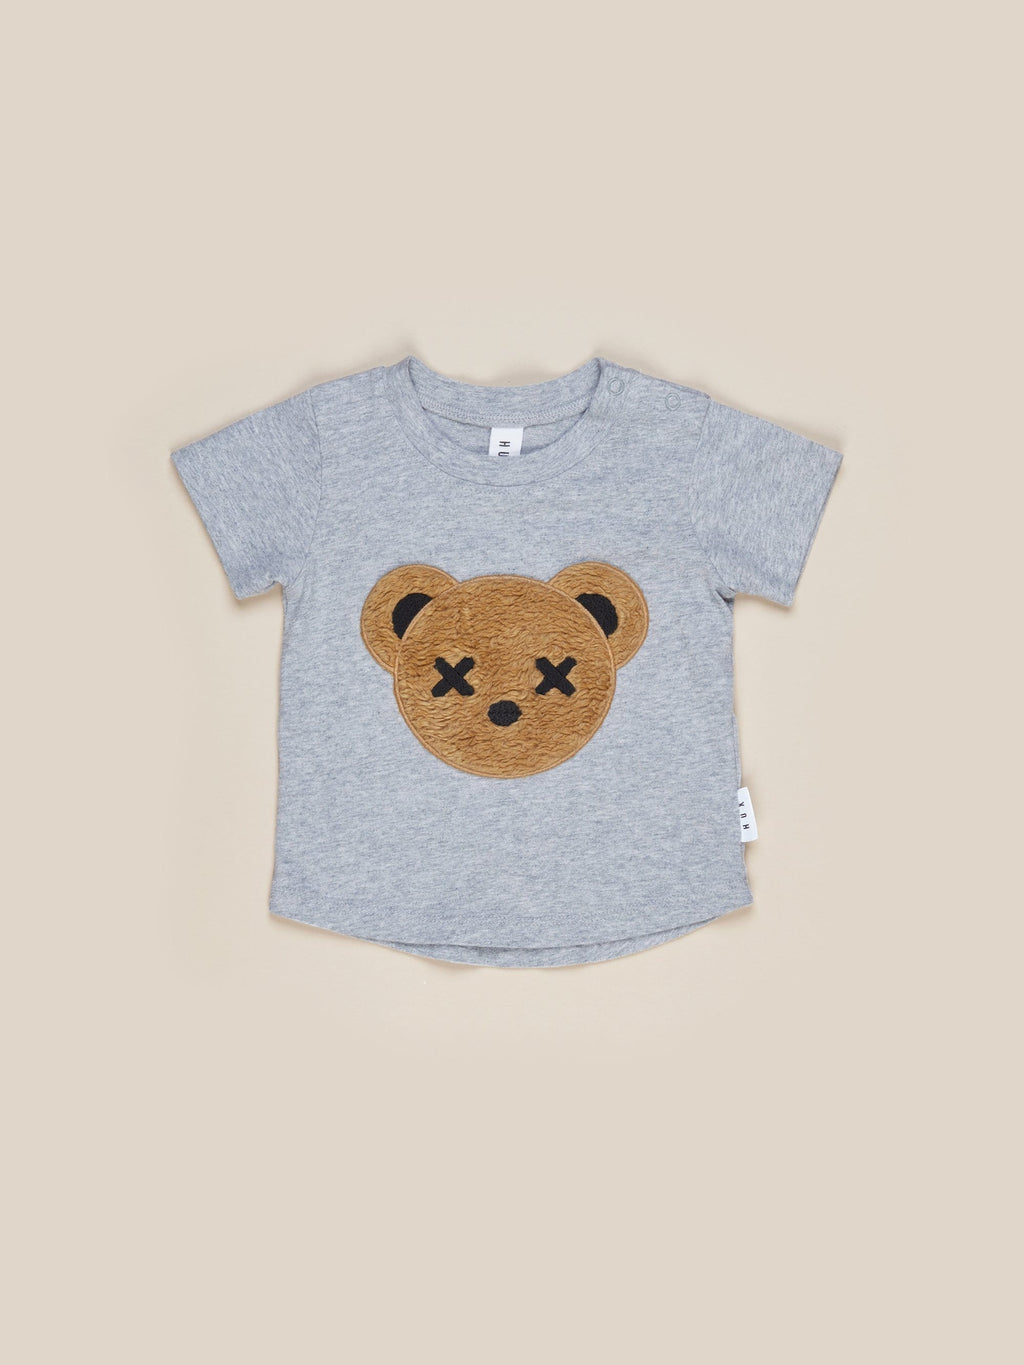 HUX Bear Applique Tshirt